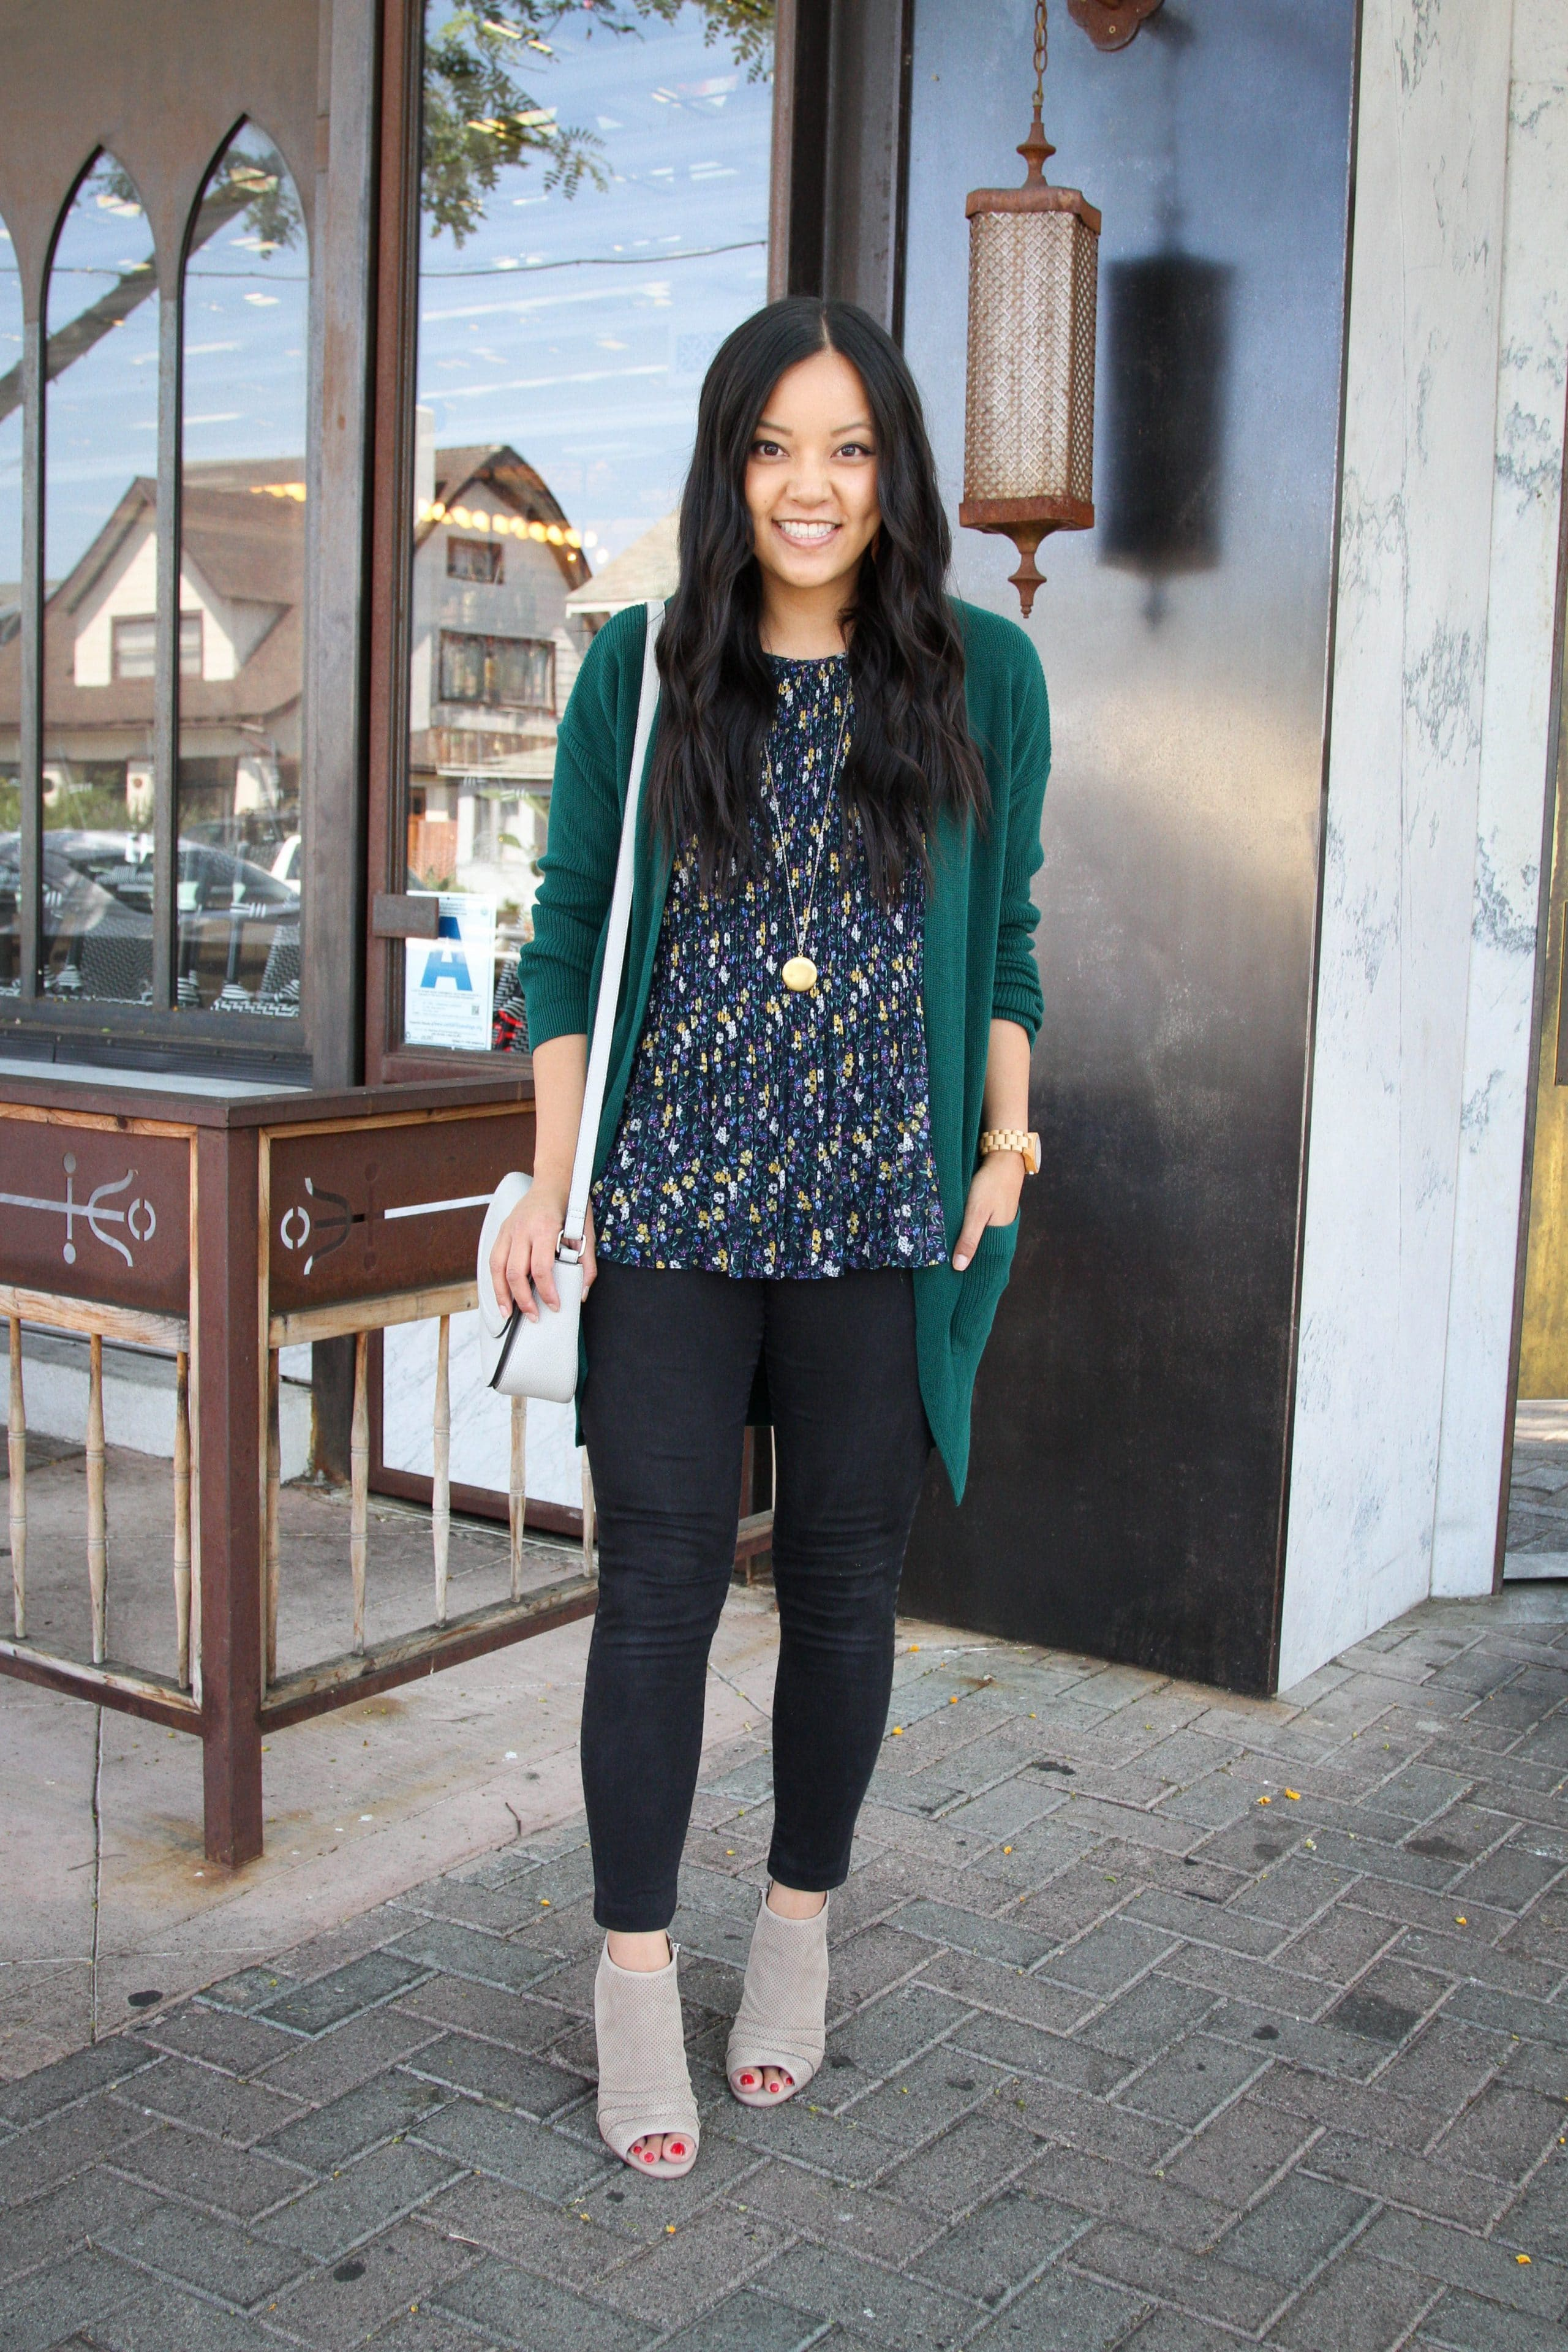 Green Cardigan + Floral Top + Black Jeans + Taupe Booties + Gray Bag